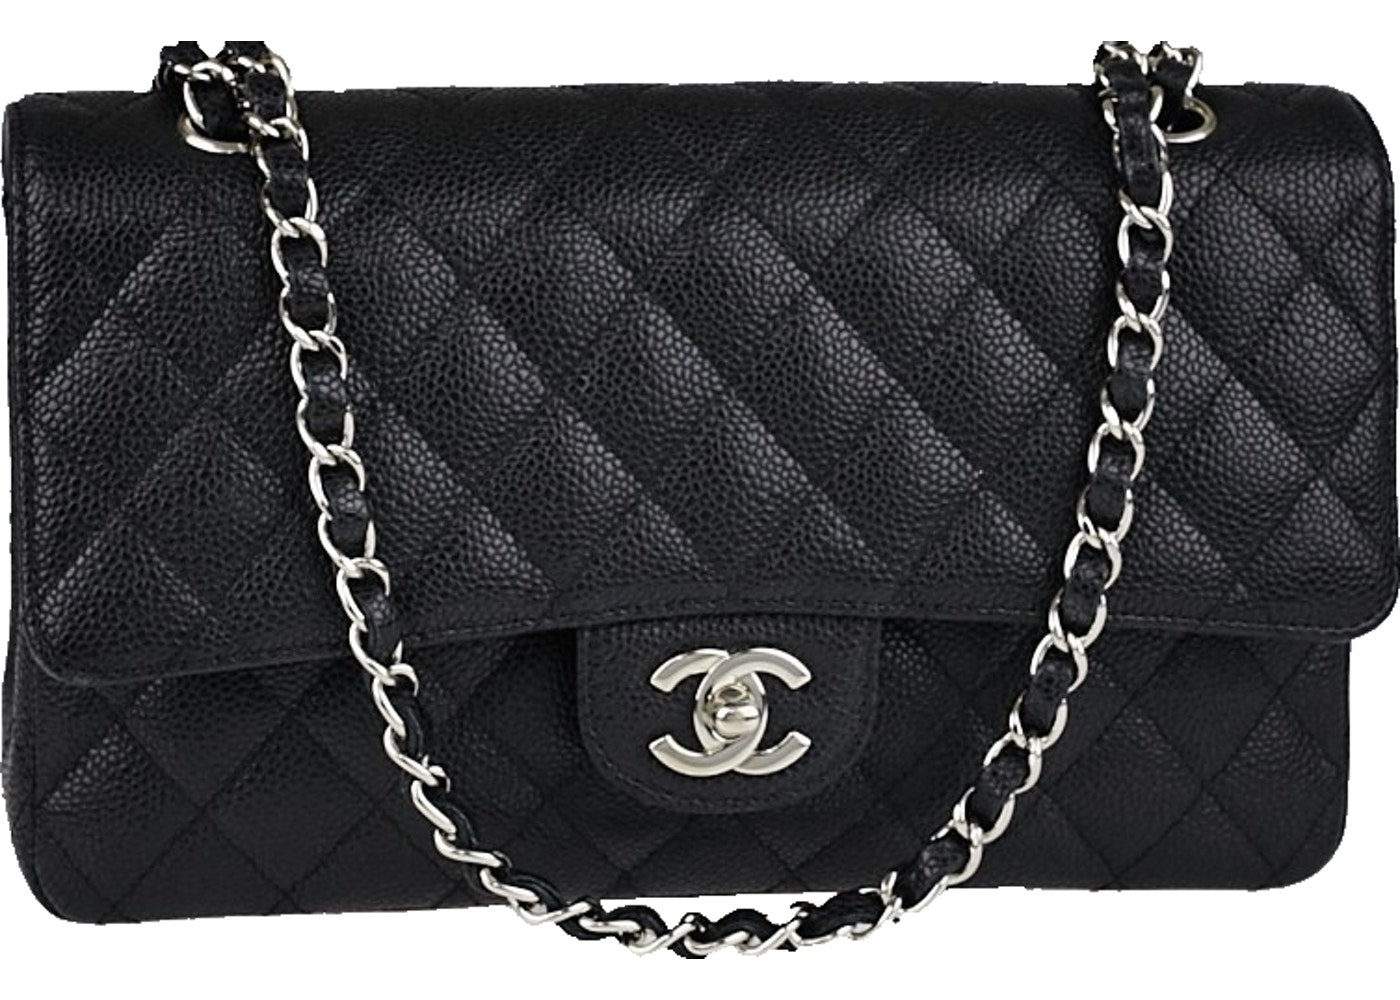 191a41b04d72 Chanel Classic Double Flap Quilted Medium Black. Quilted Medium Black